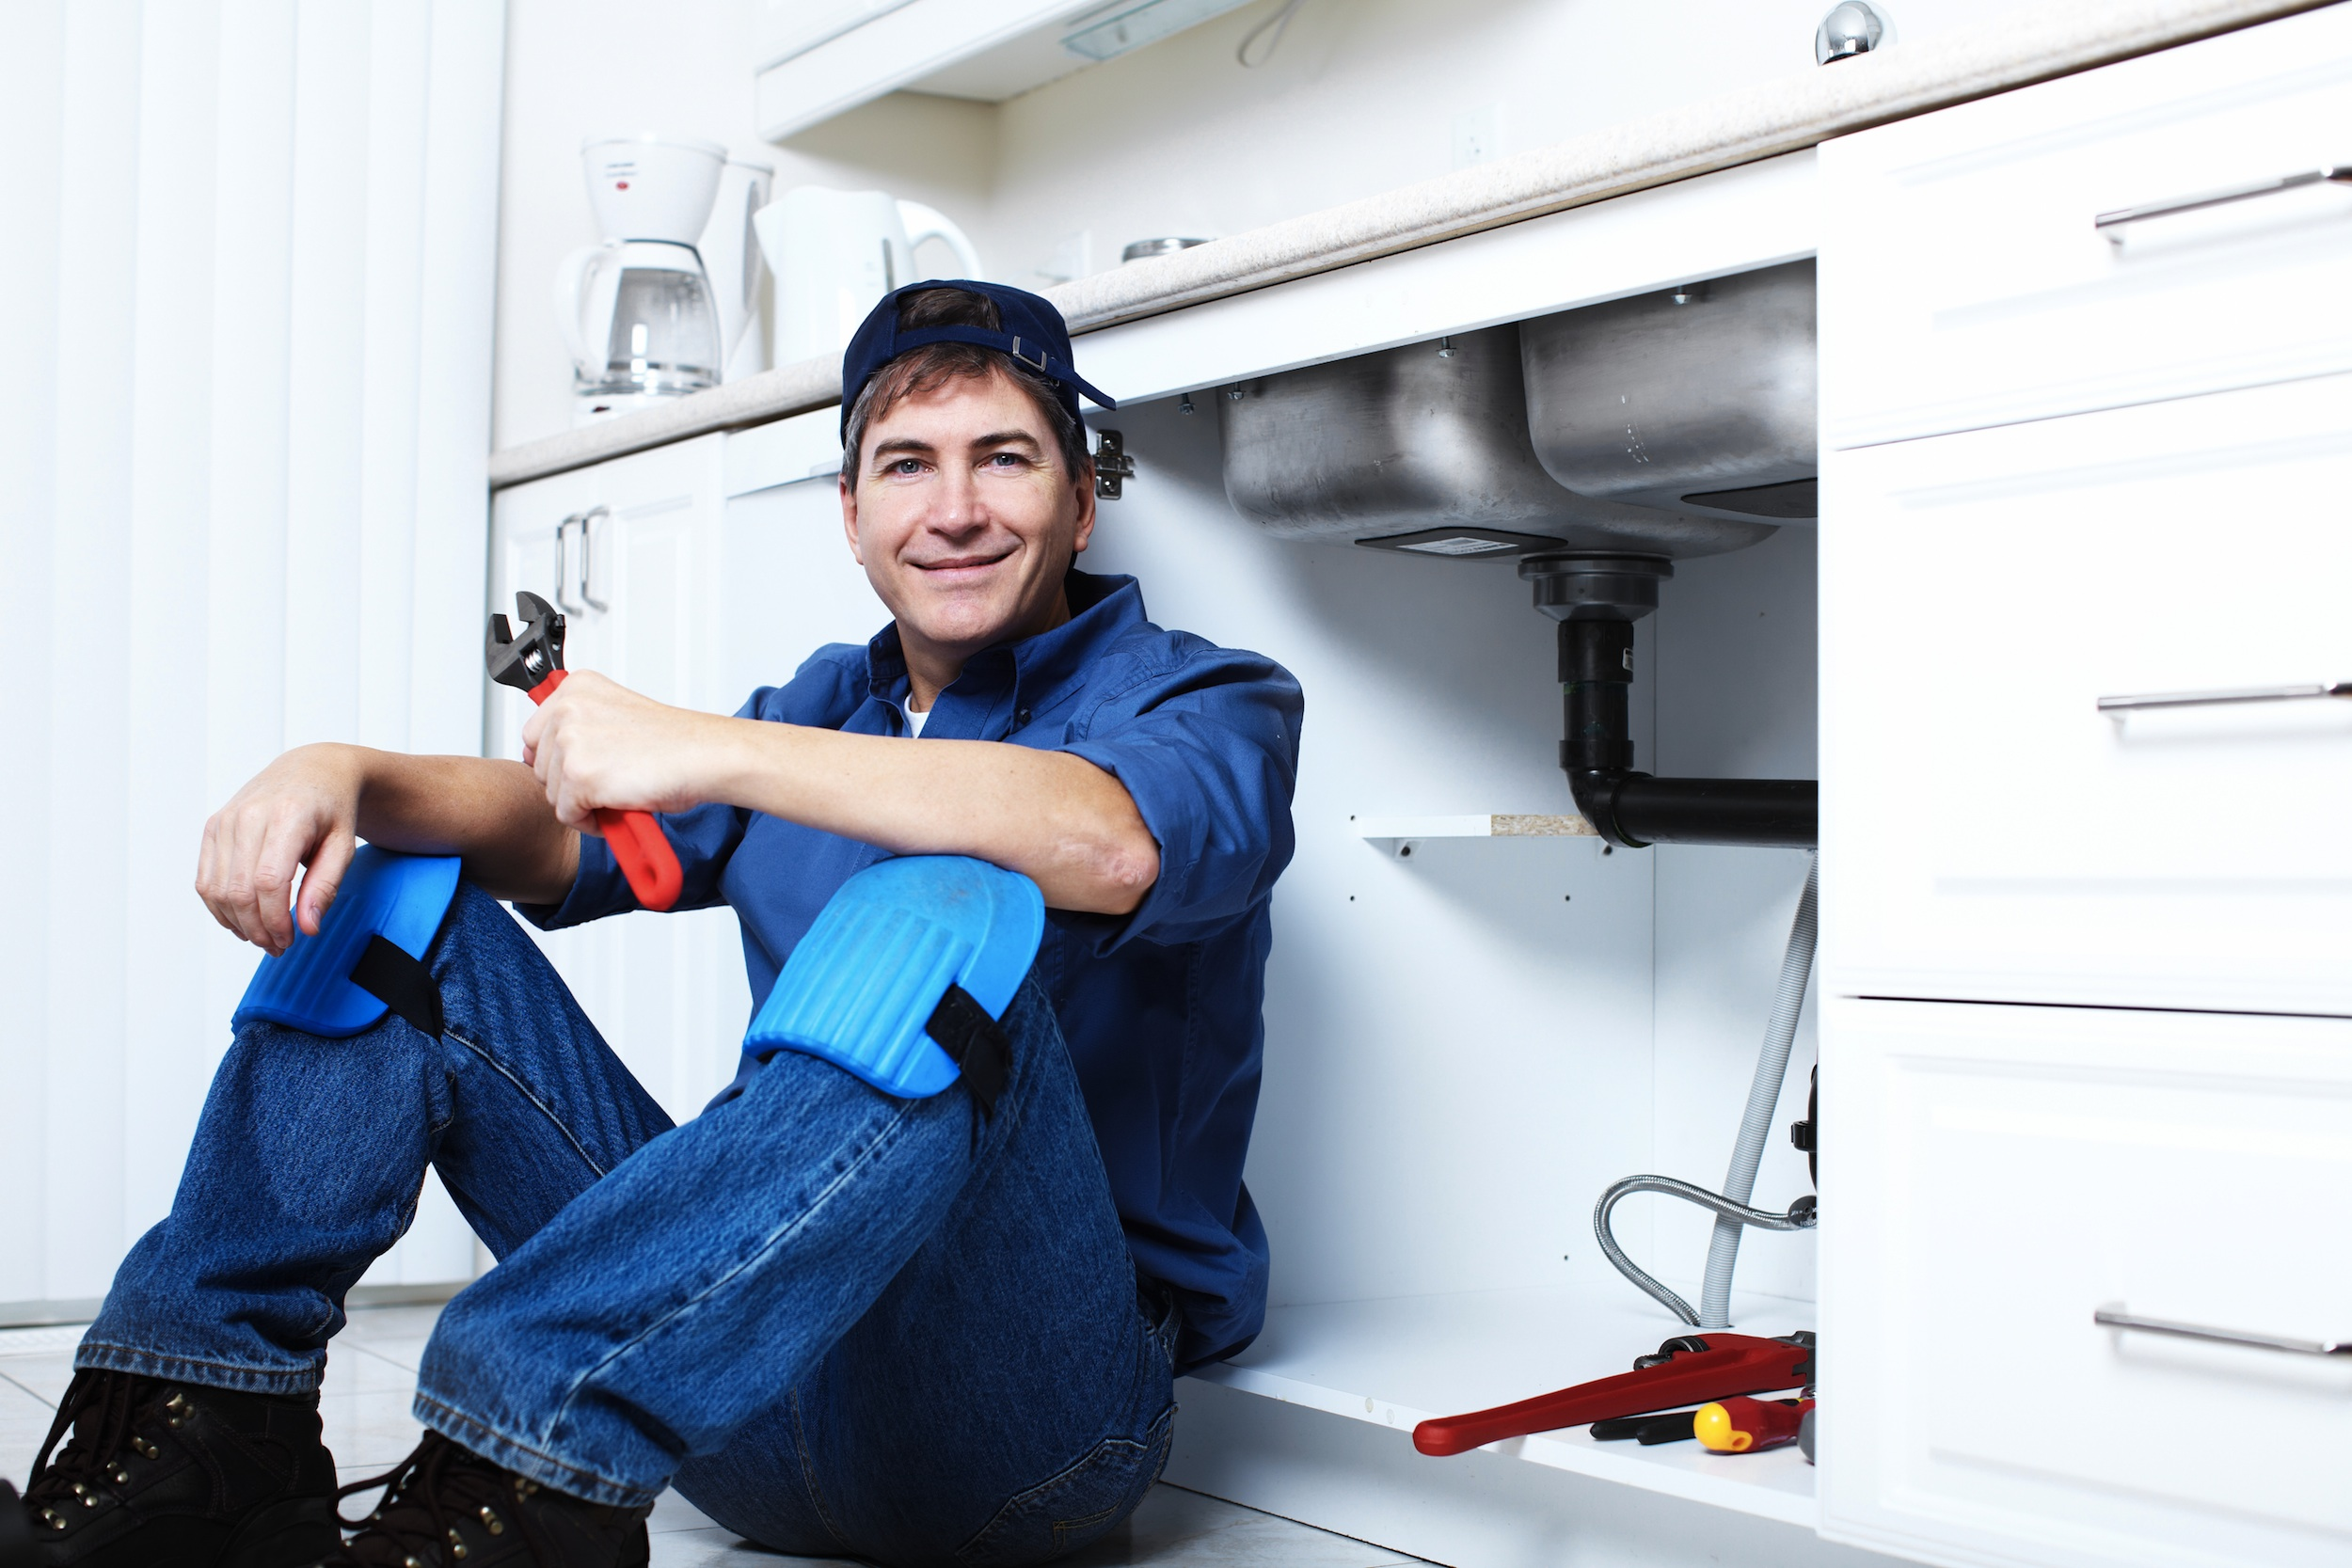 How to avoid a costly plumbing disaster bruzzese home for A to z home improvements